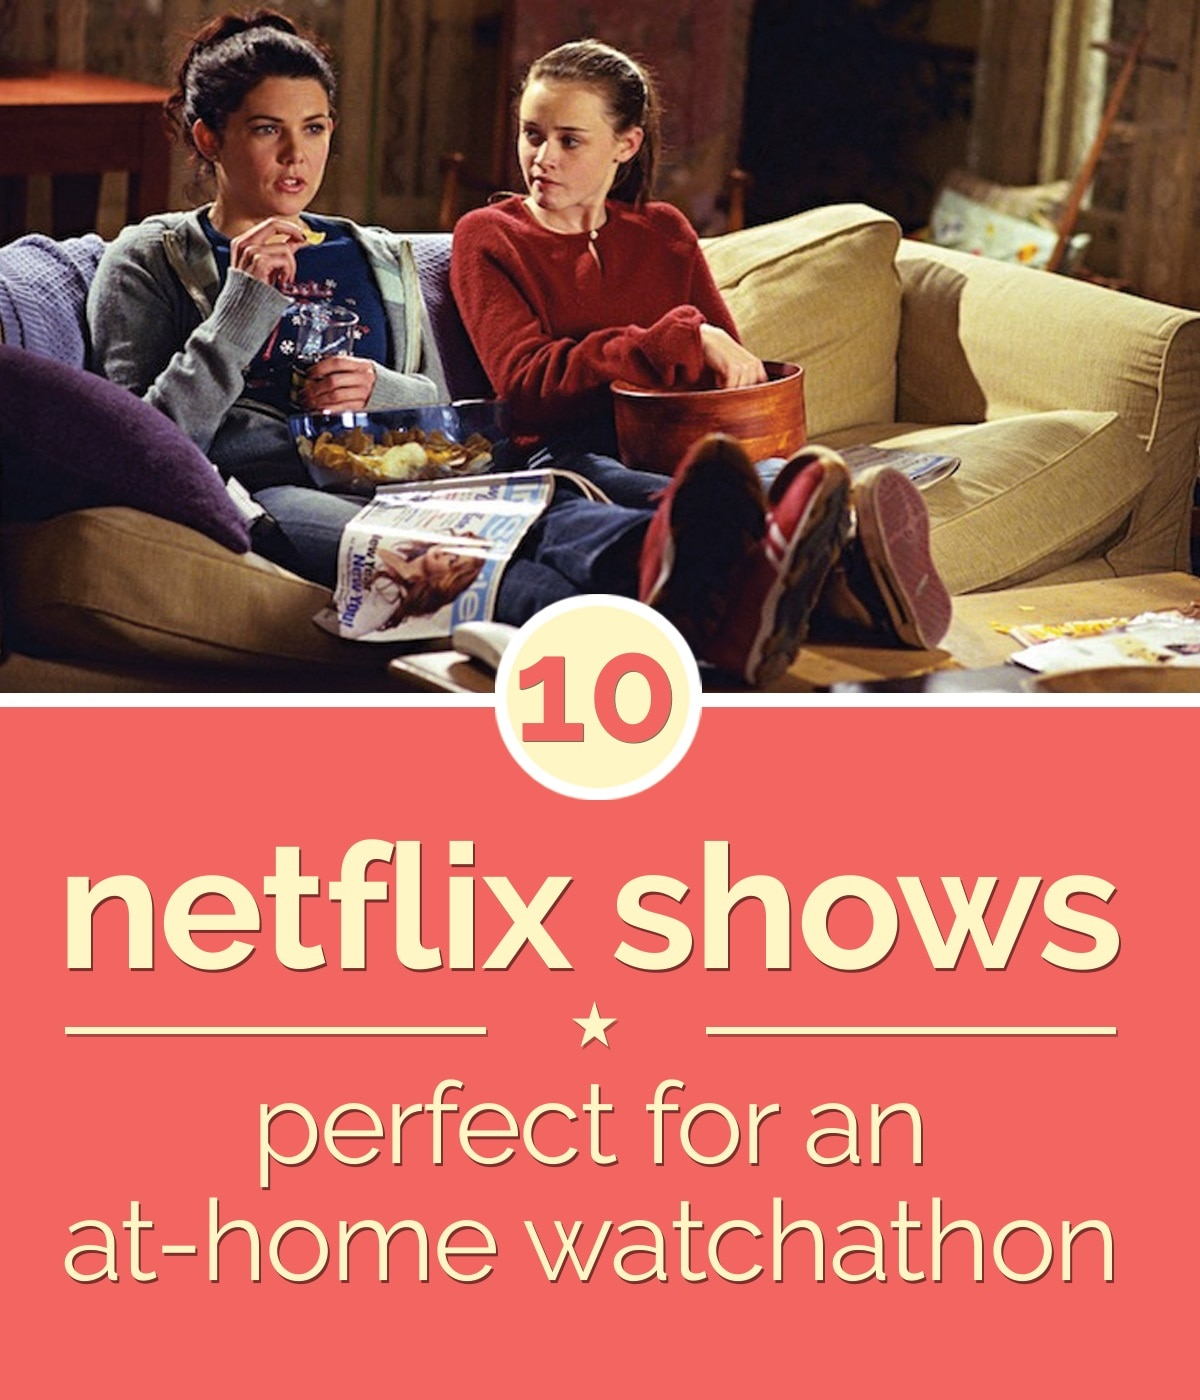 life-netflix-shows-watchaton